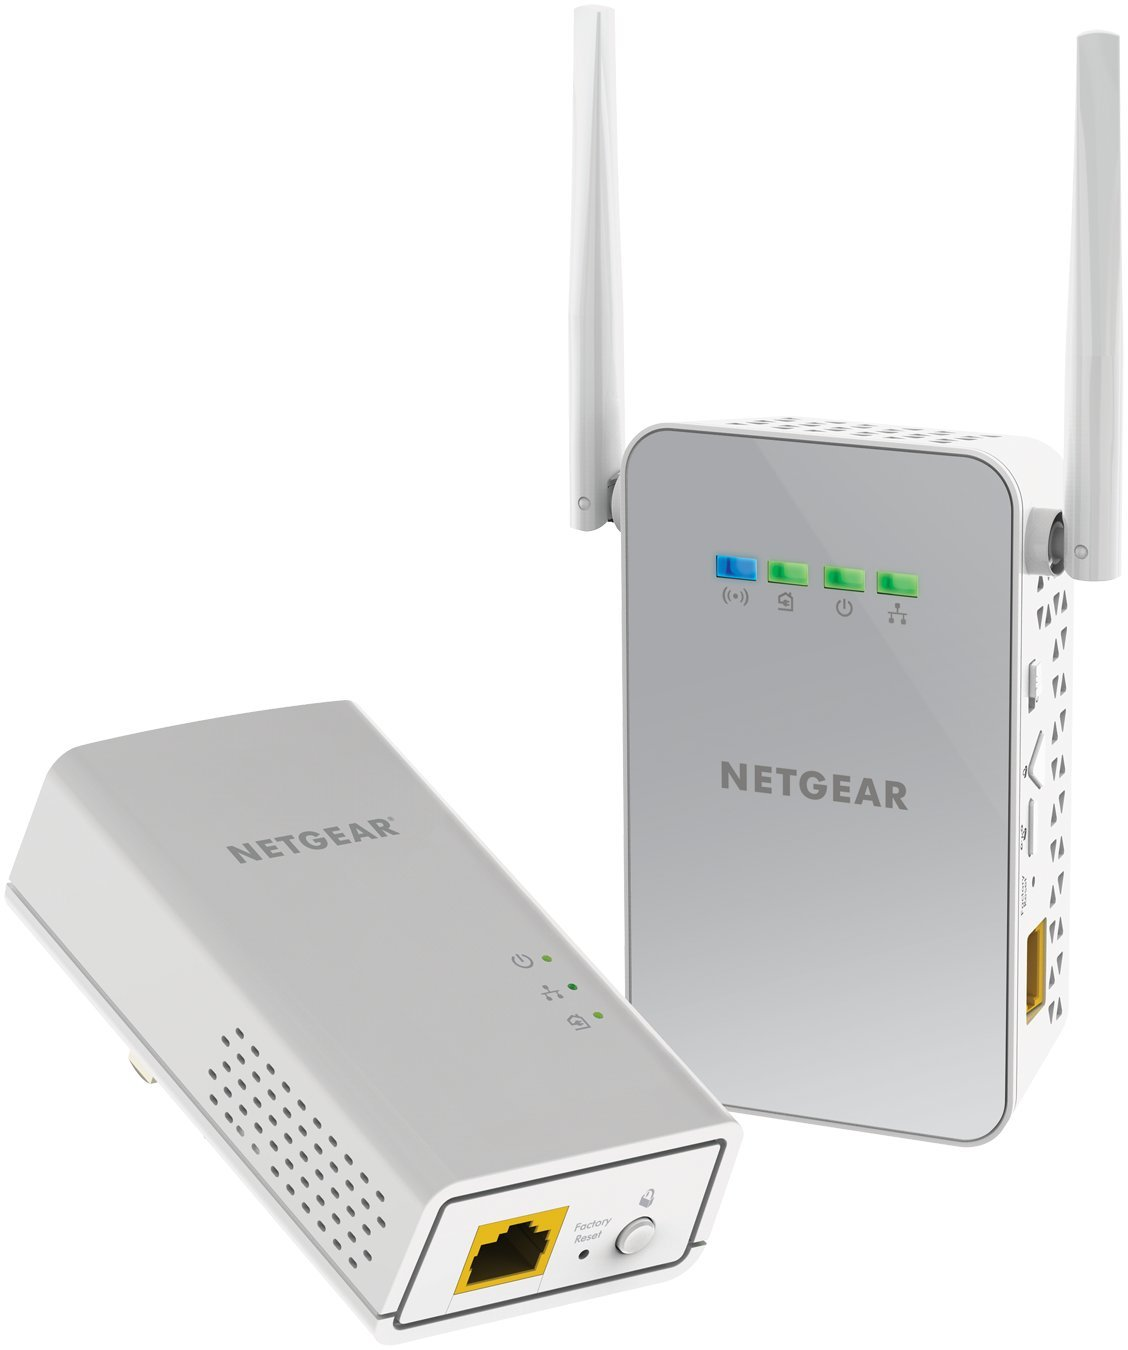 NETGEAR Powerline 1000 Mbps WiFi, 802.11ac, 1 Gigabit Port (PLW1000-100NAS) by NETGEAR